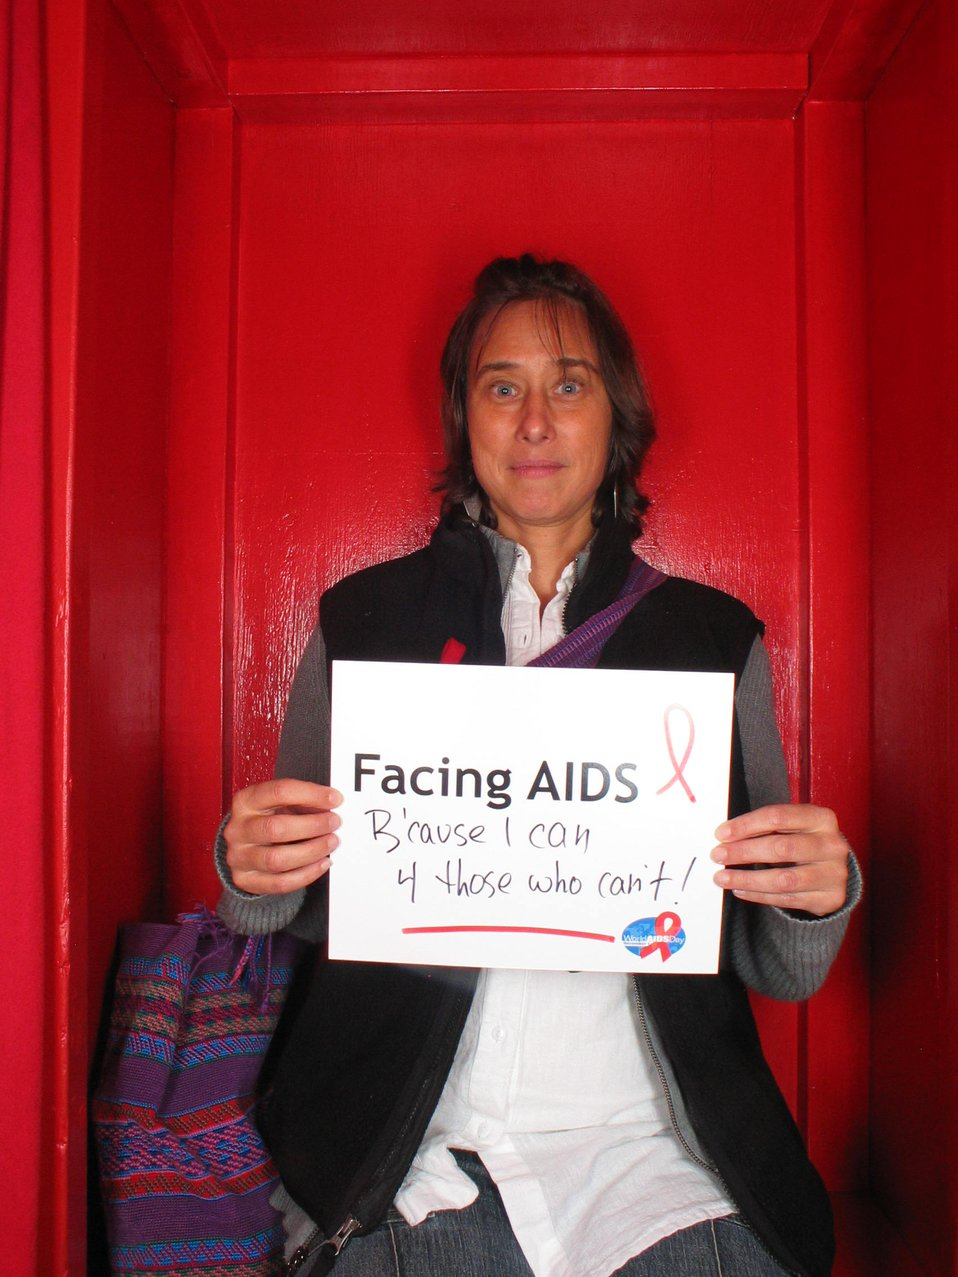 Facing AIDS because I can 4 those who can't.